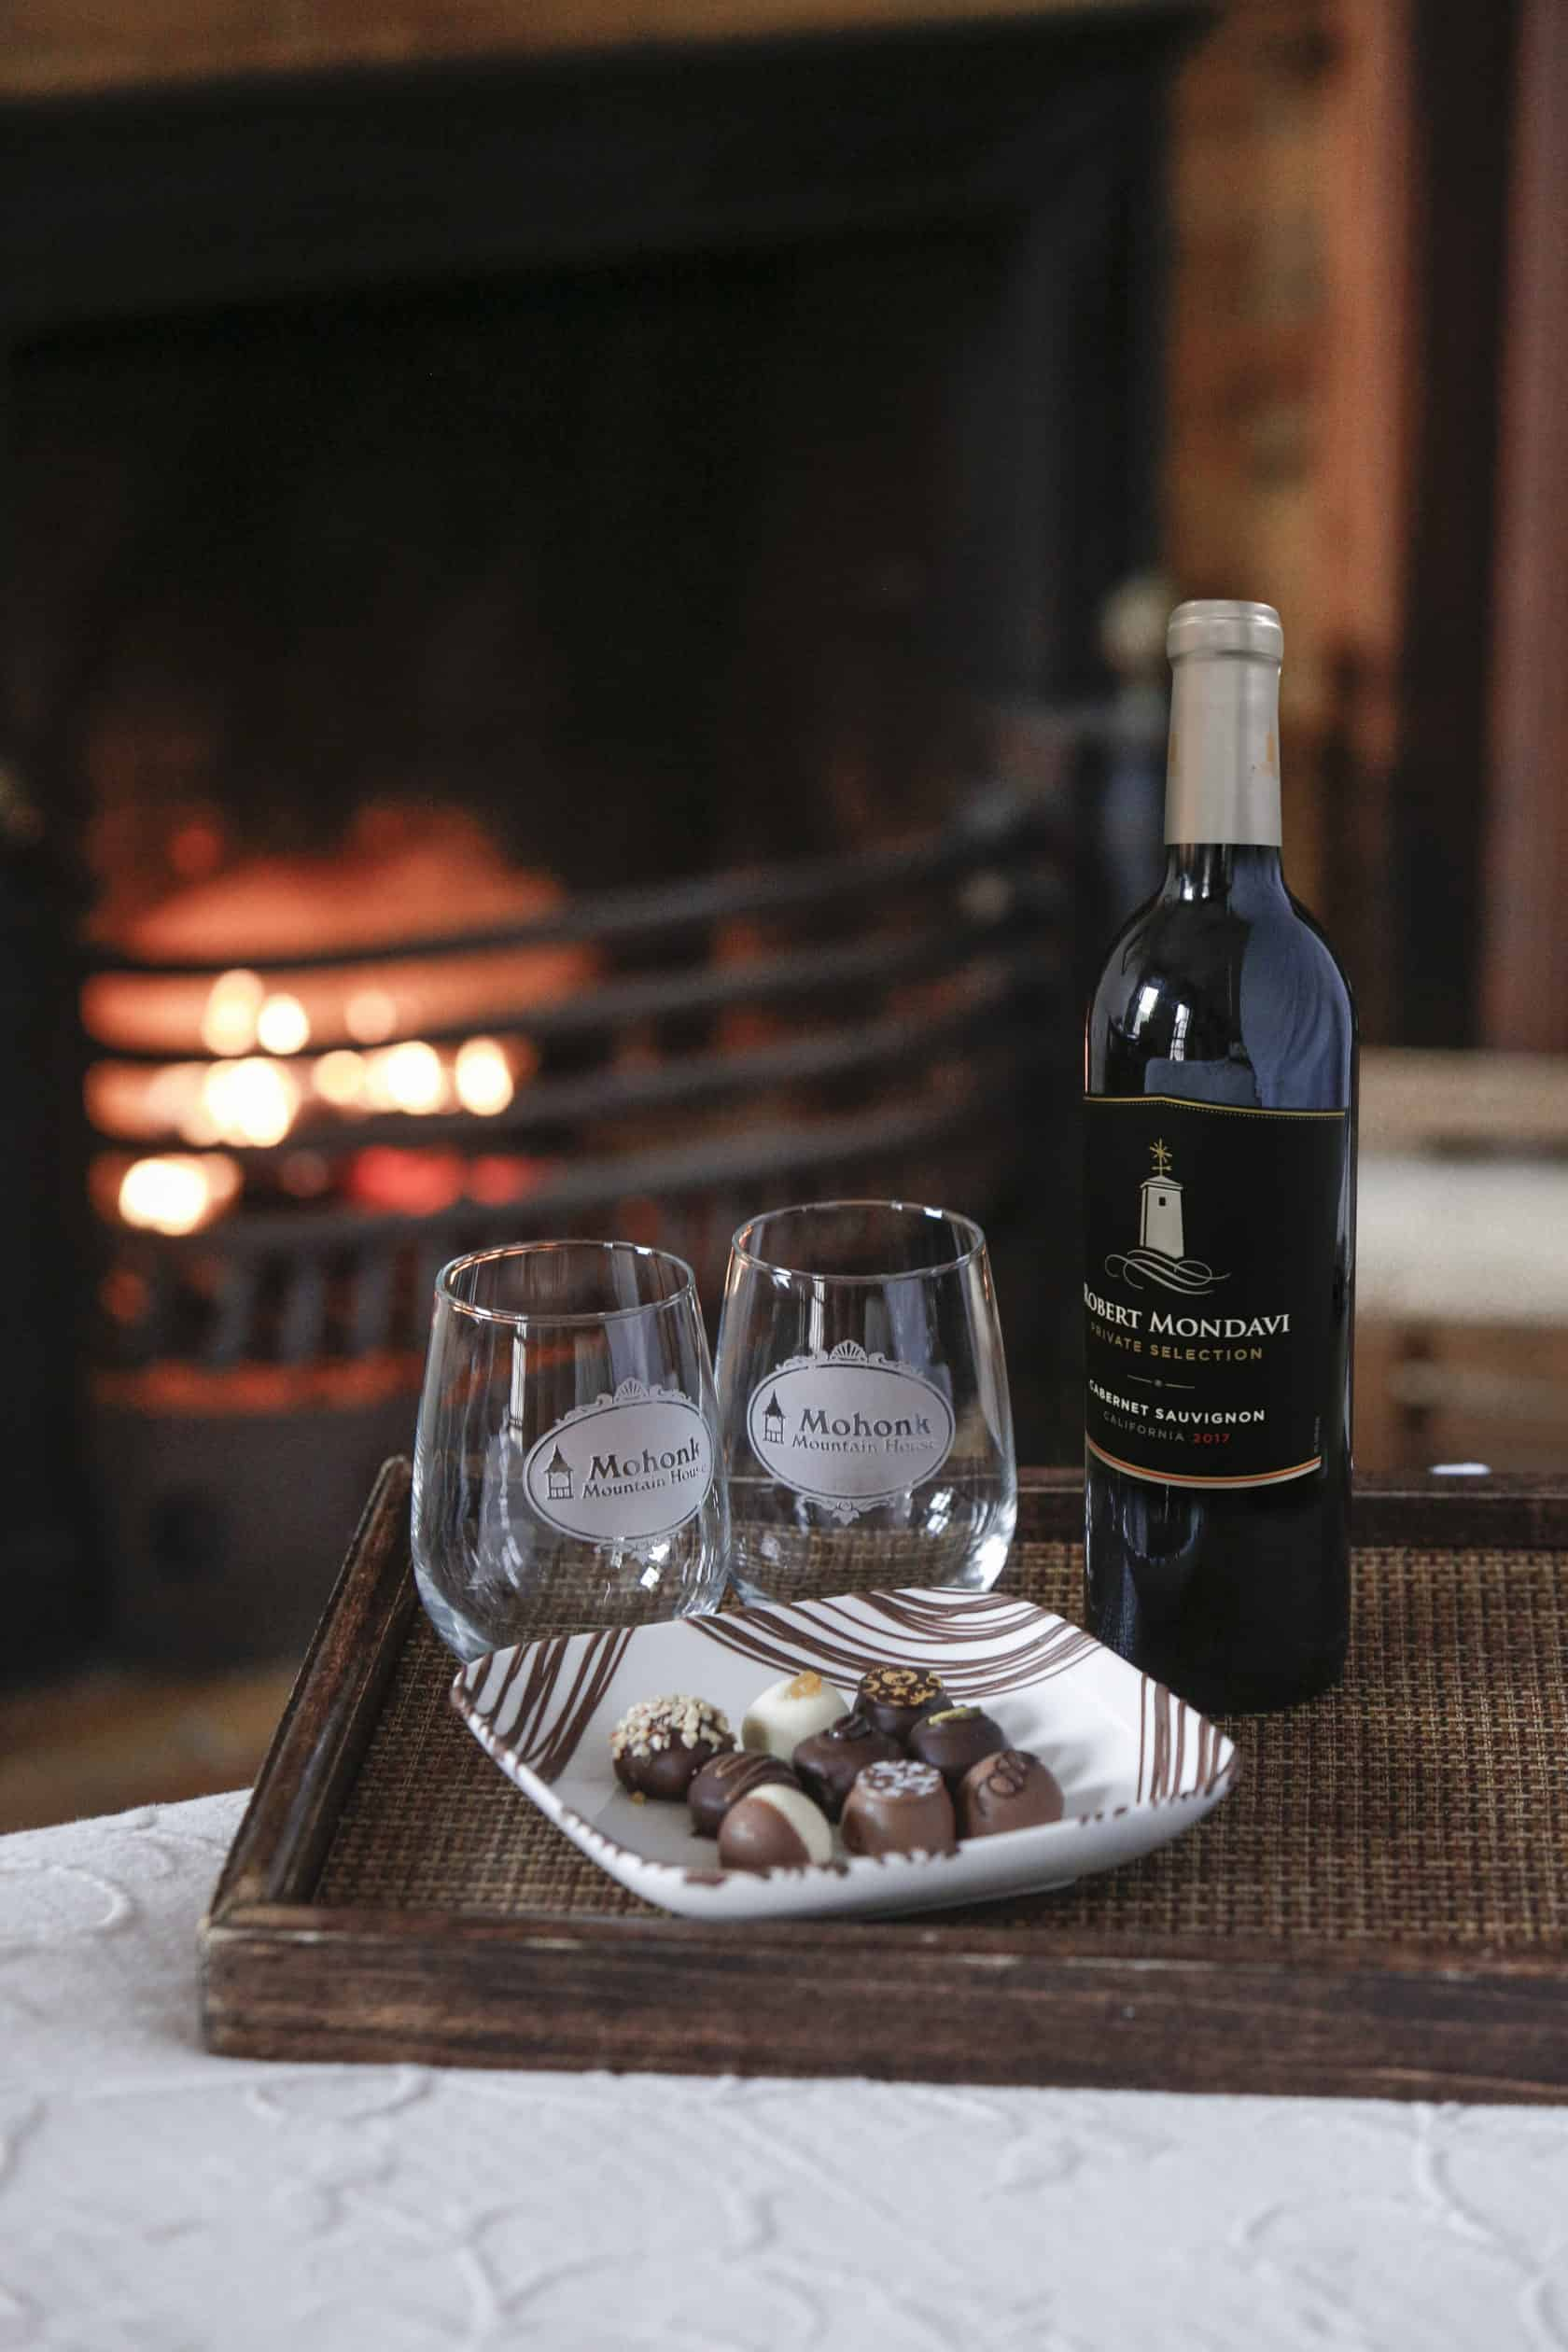 chocolates and wine by fireplace